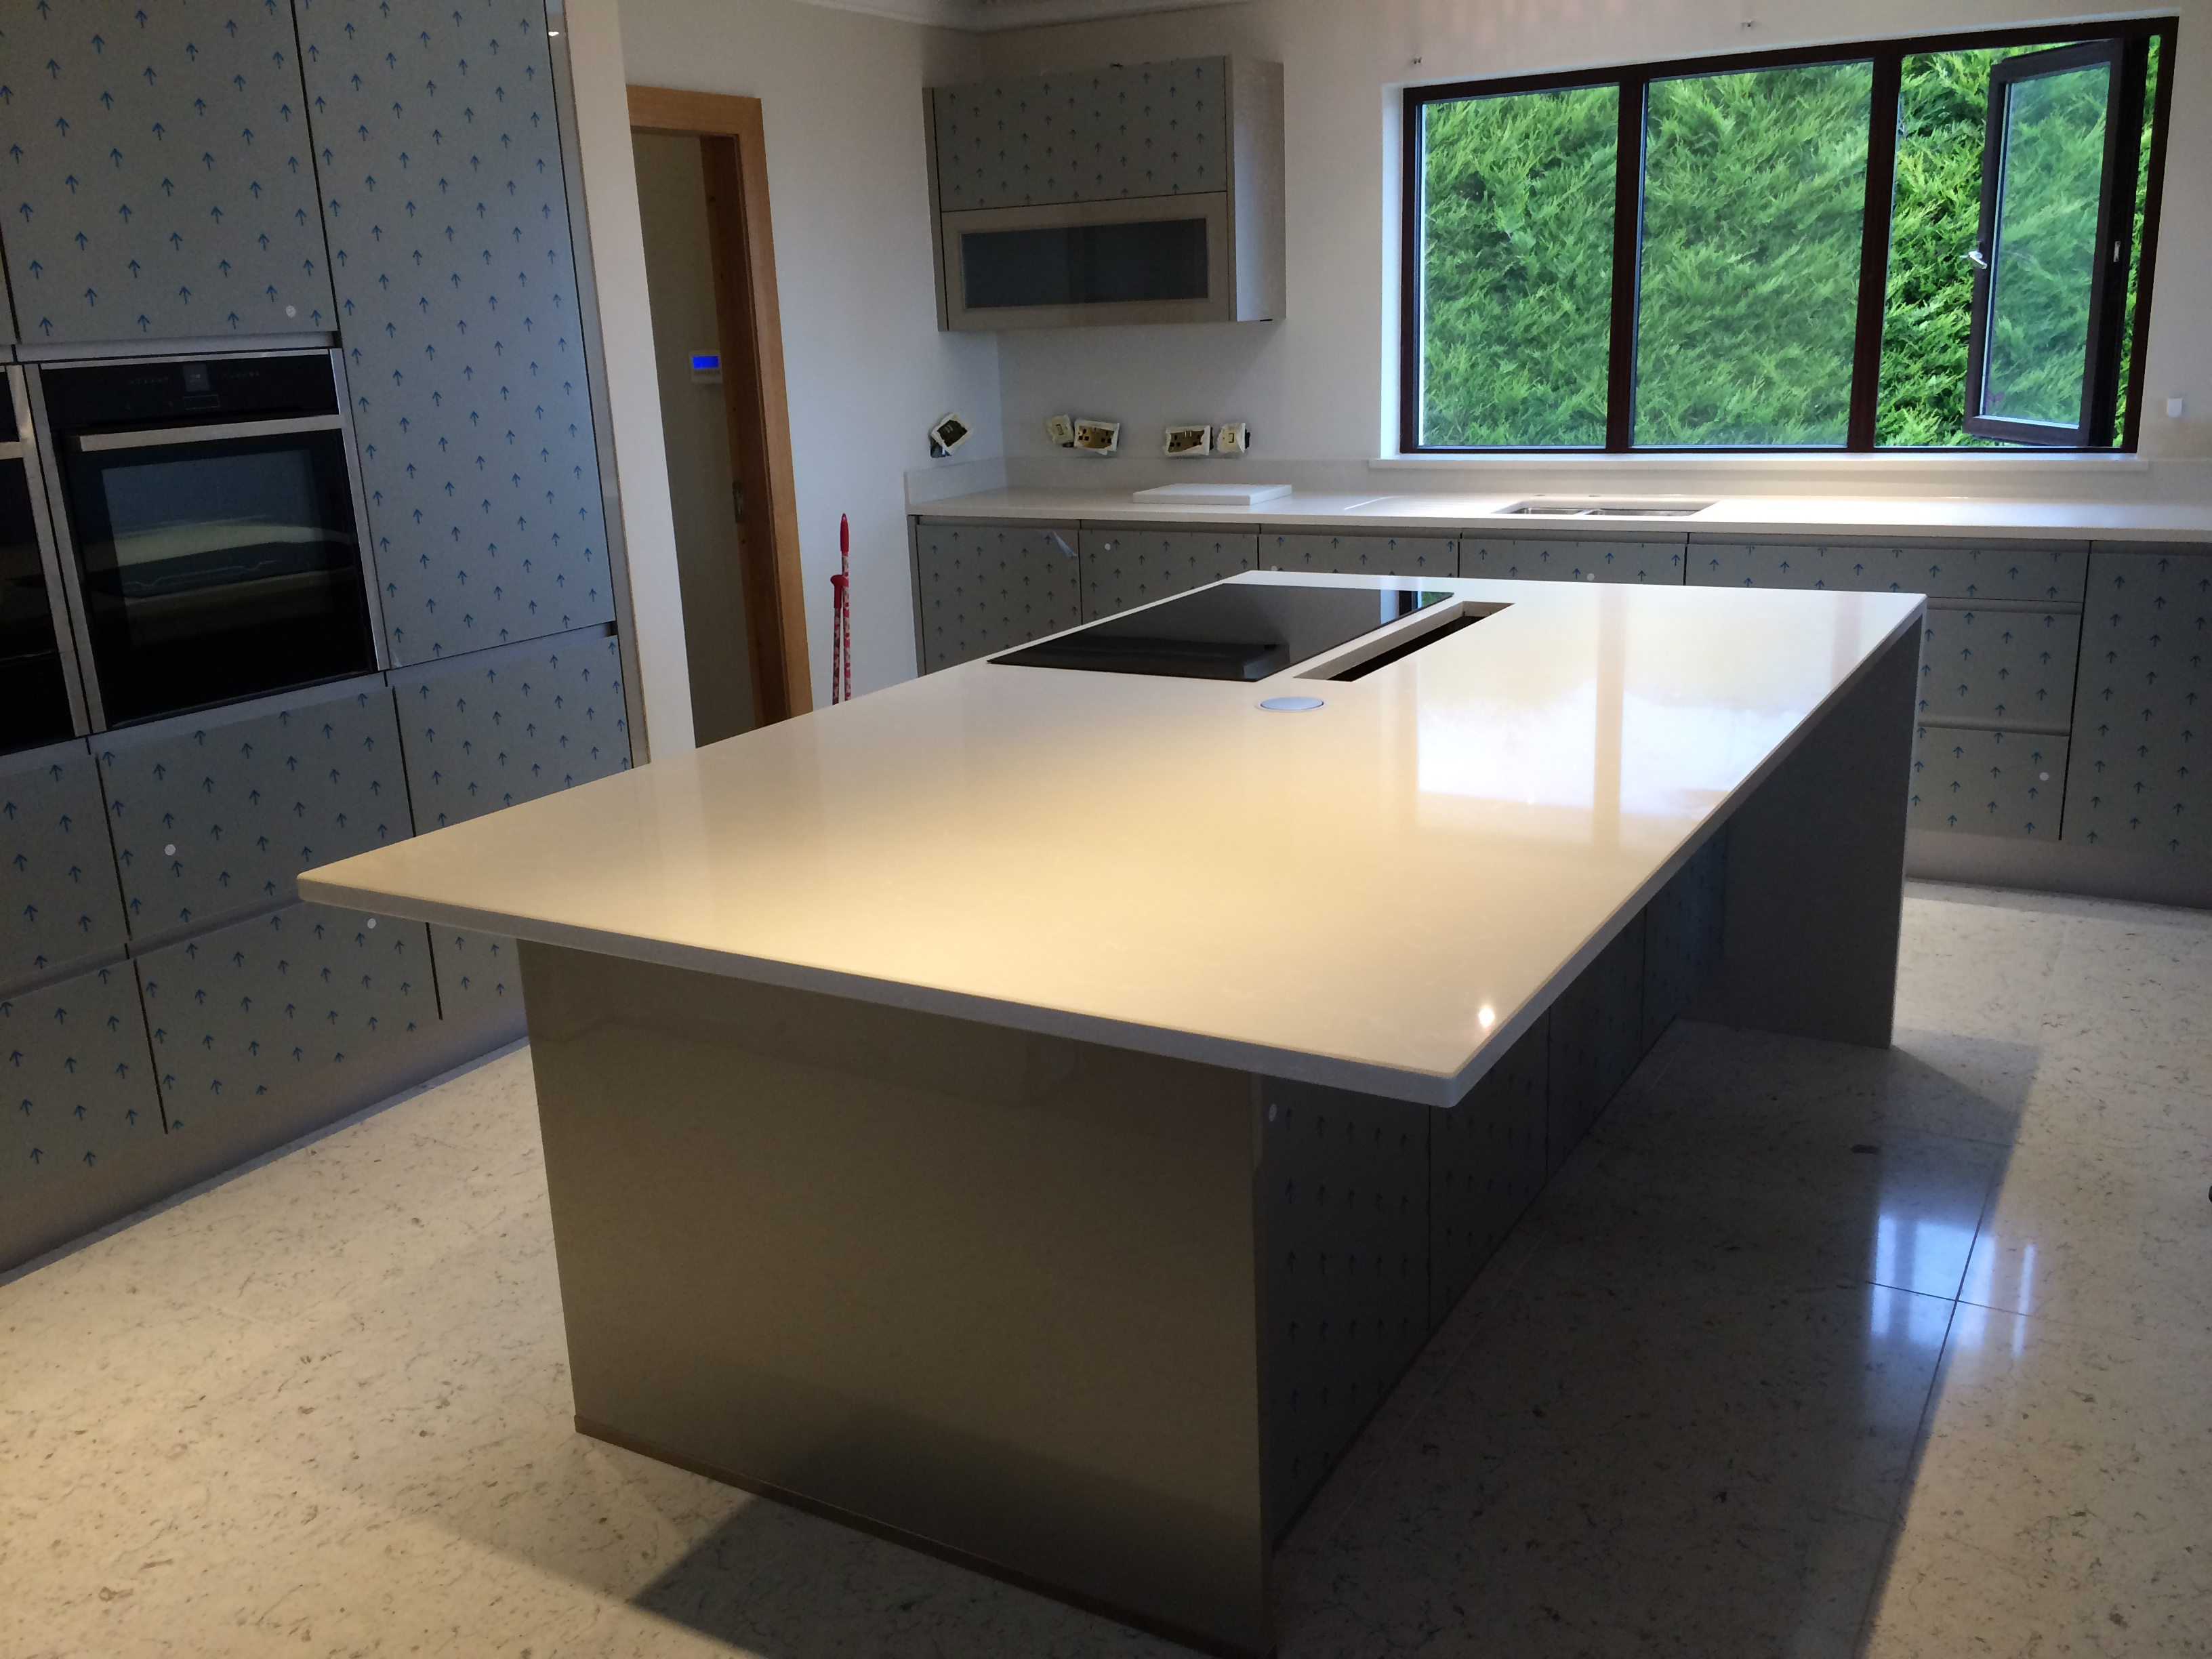 Residential Kitchen Using Restaurant Work Tables